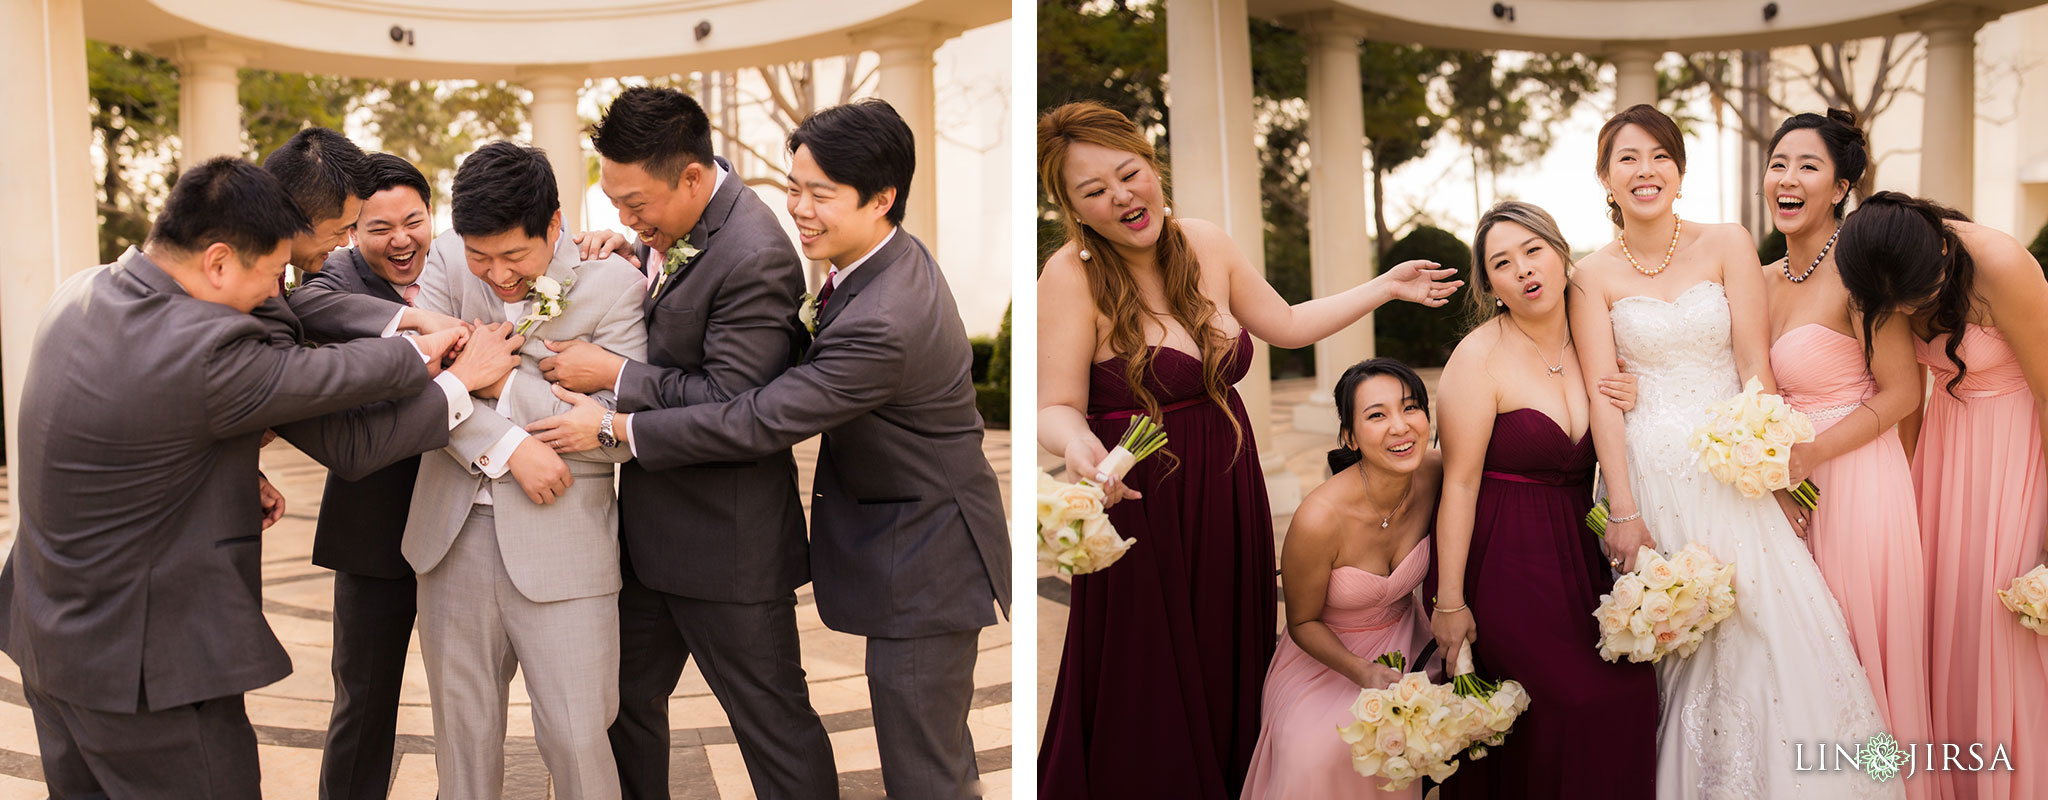 36 monarch beach resort wedding party photography